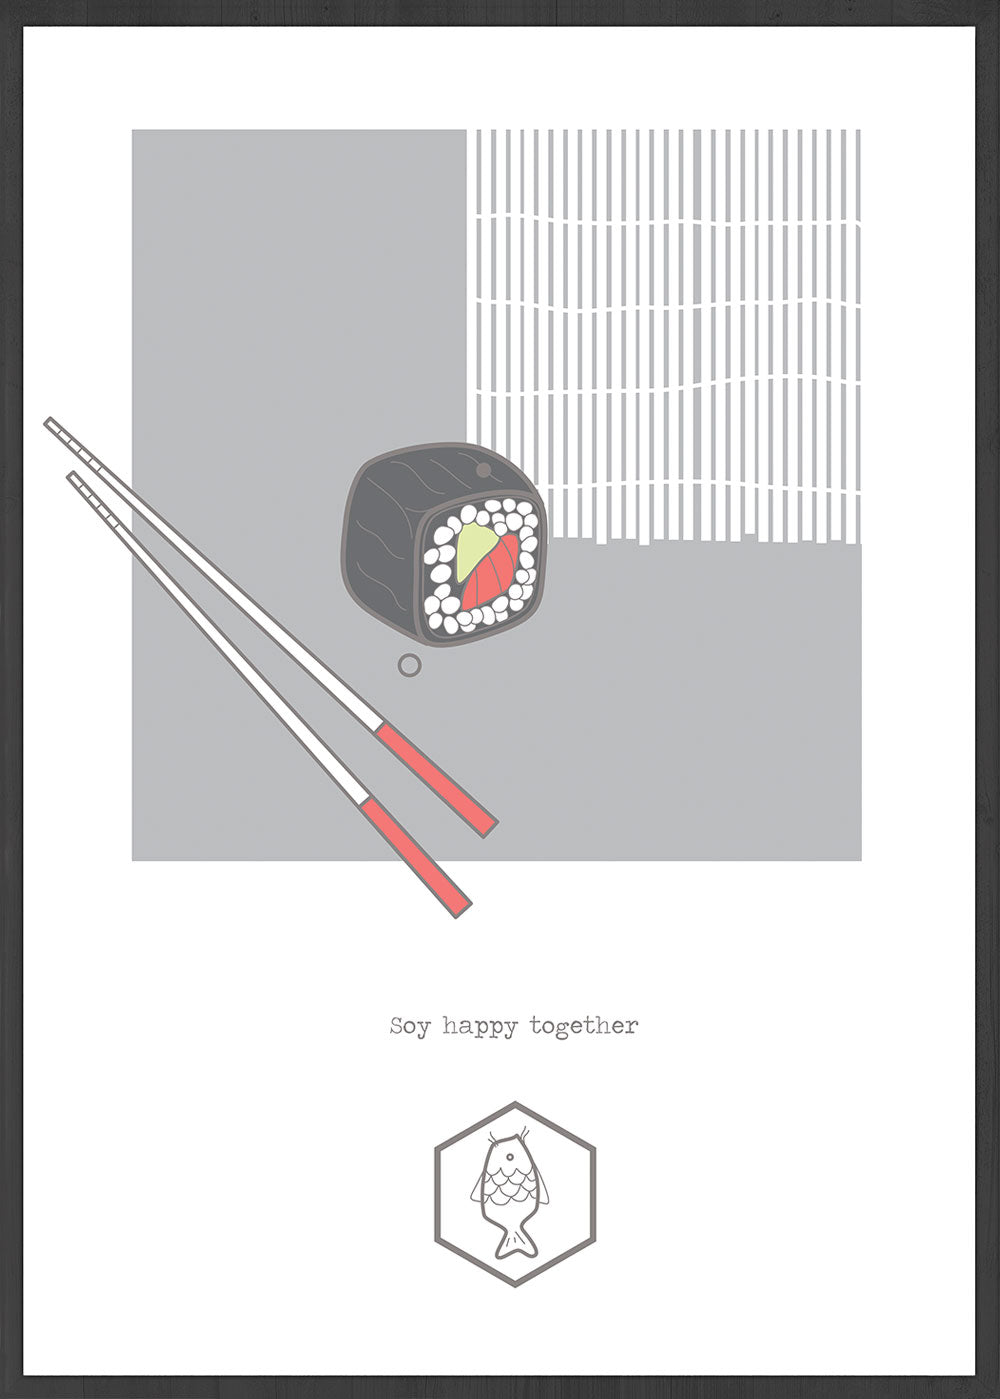 Soy Happy Together Sushi Wall Art in a frame